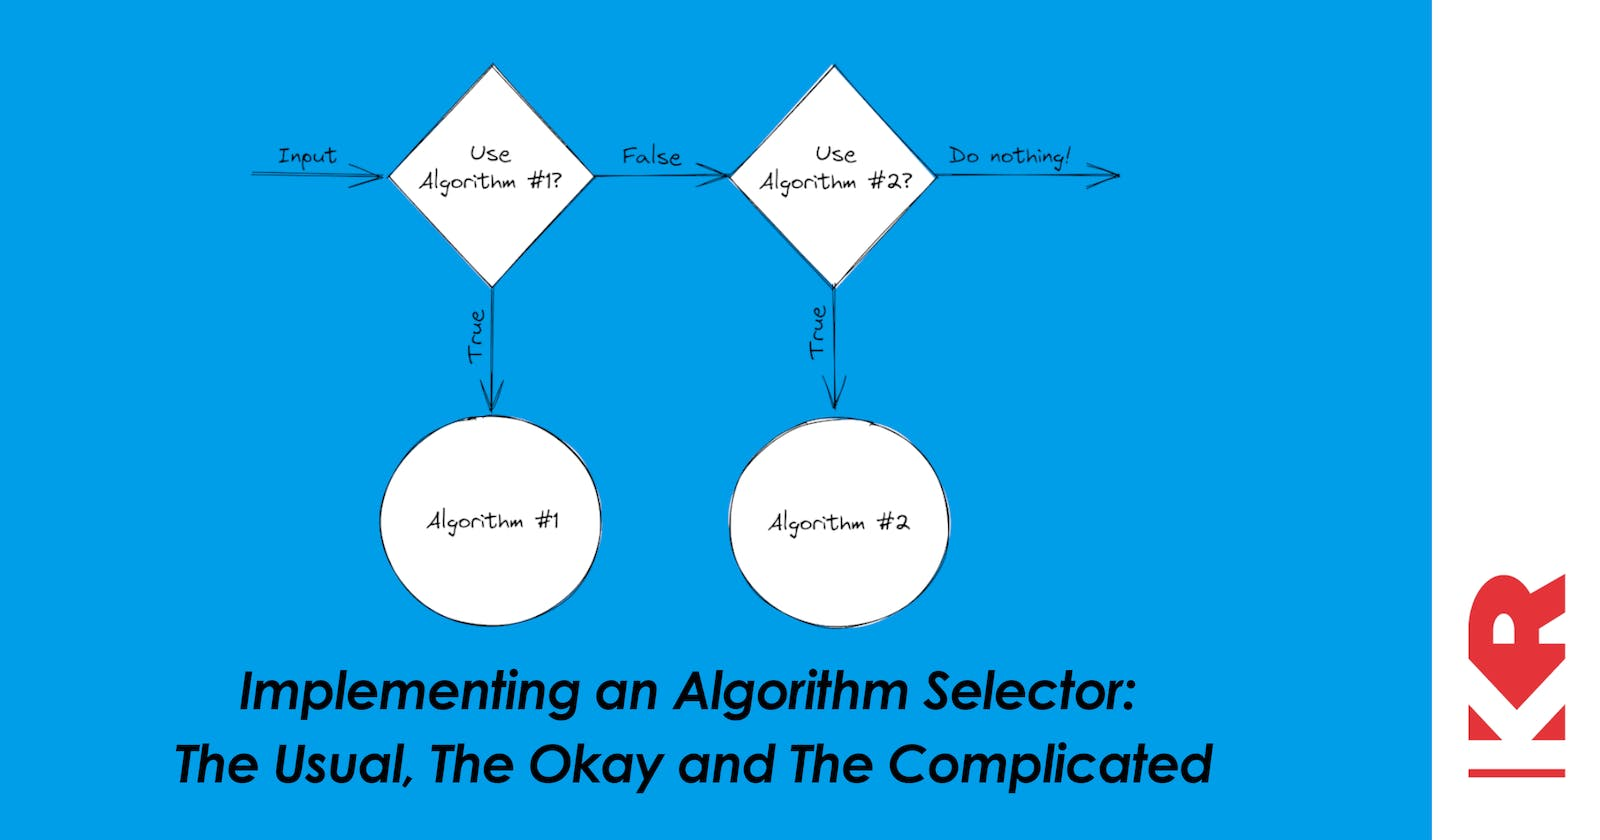 Implementing an Algorithm Selector: The Usual, The Okay and The Complicated